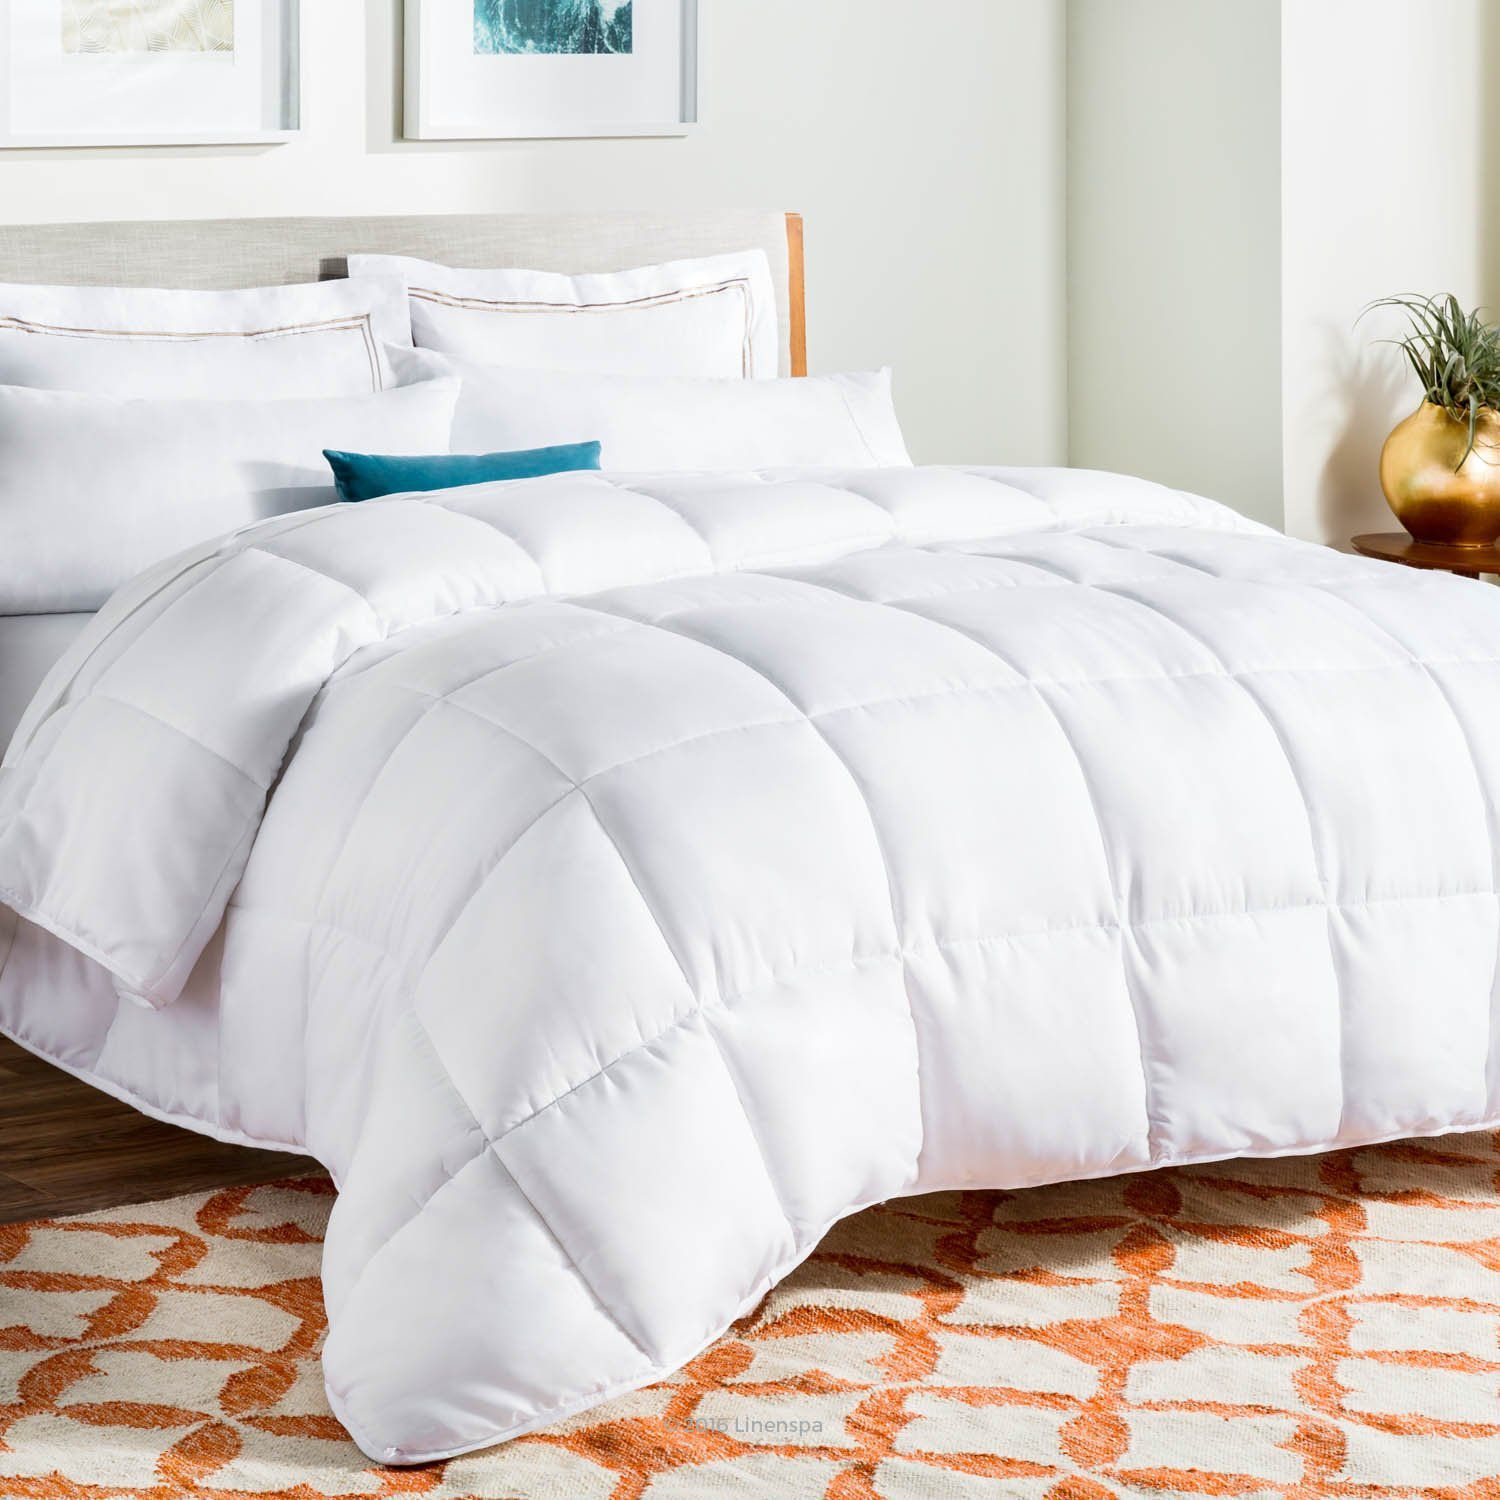 ip com flannel comforter mainstays sleep walmart number